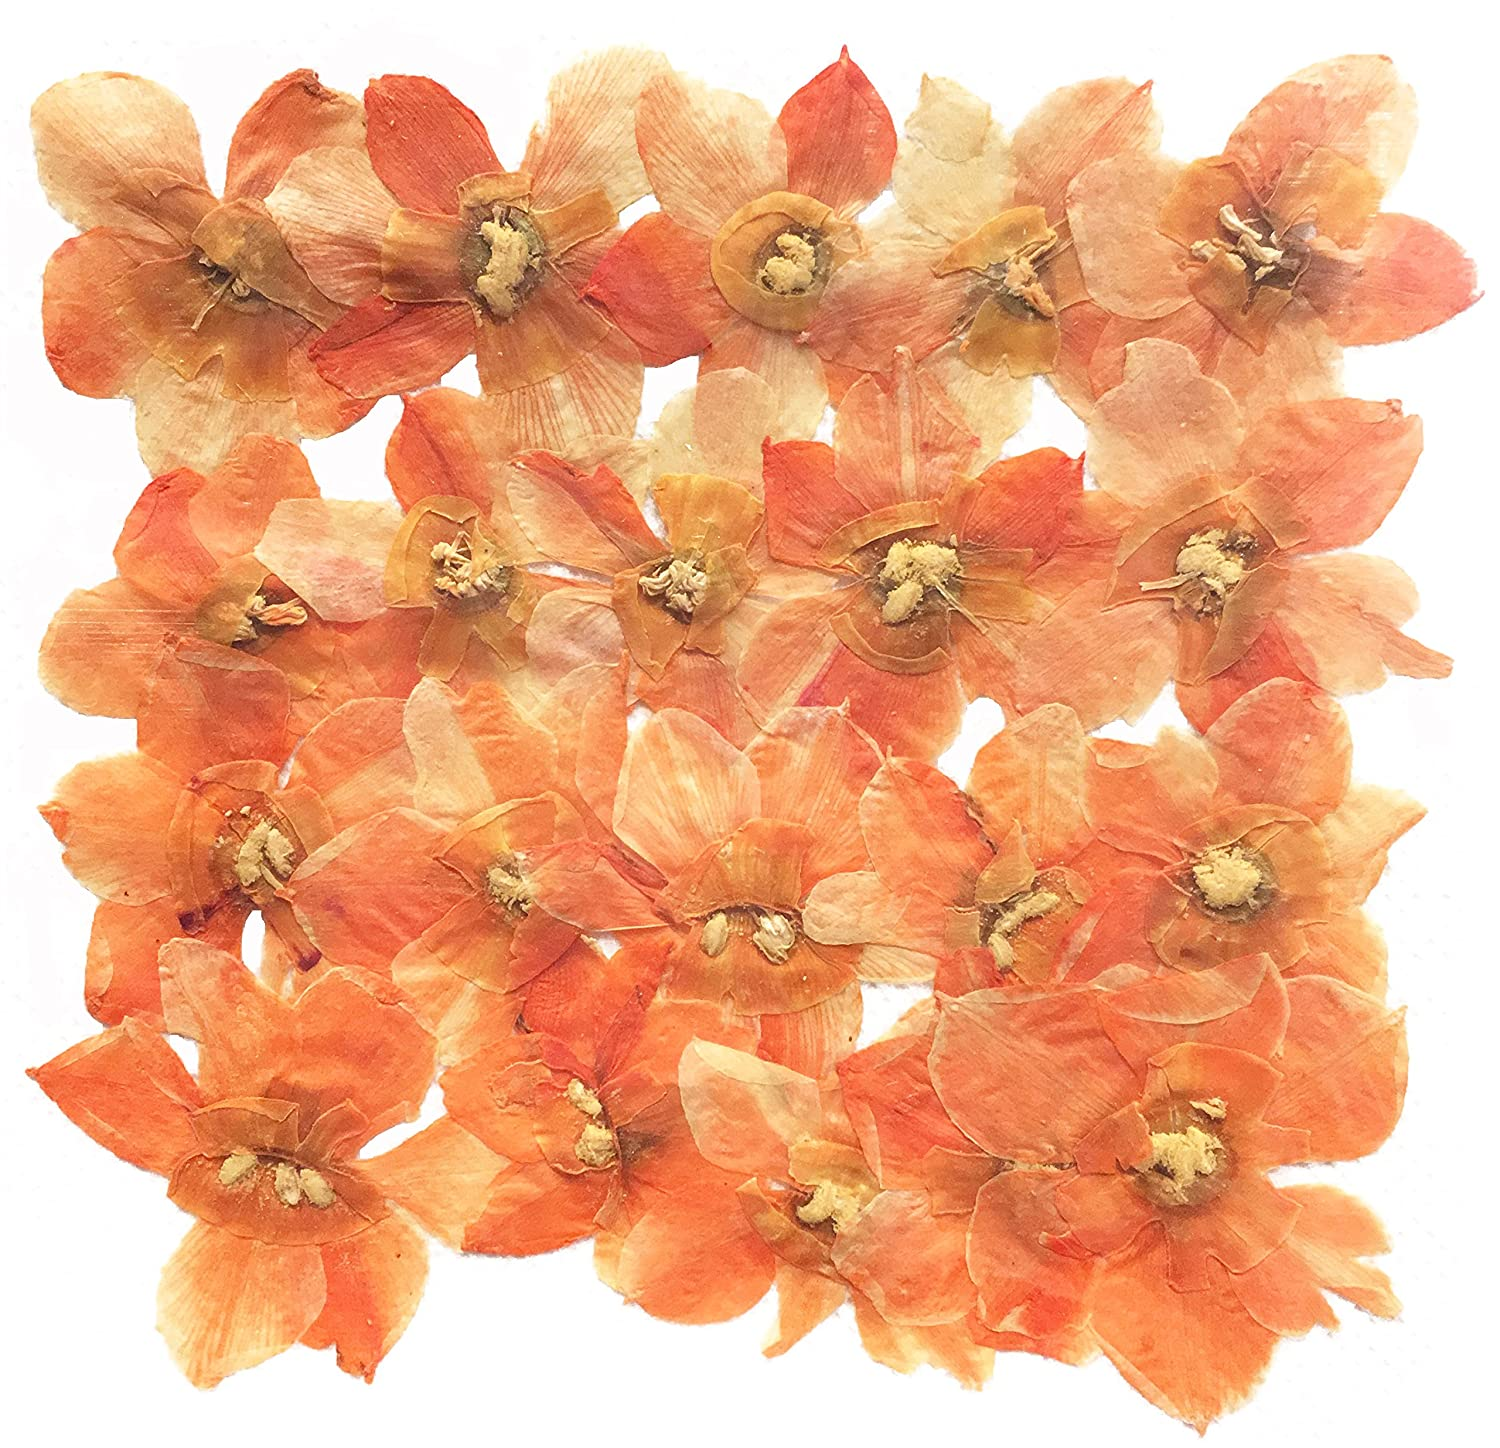 craft card making scrapbooking Pressed flowers light orange daffodil 20pcs for floral art